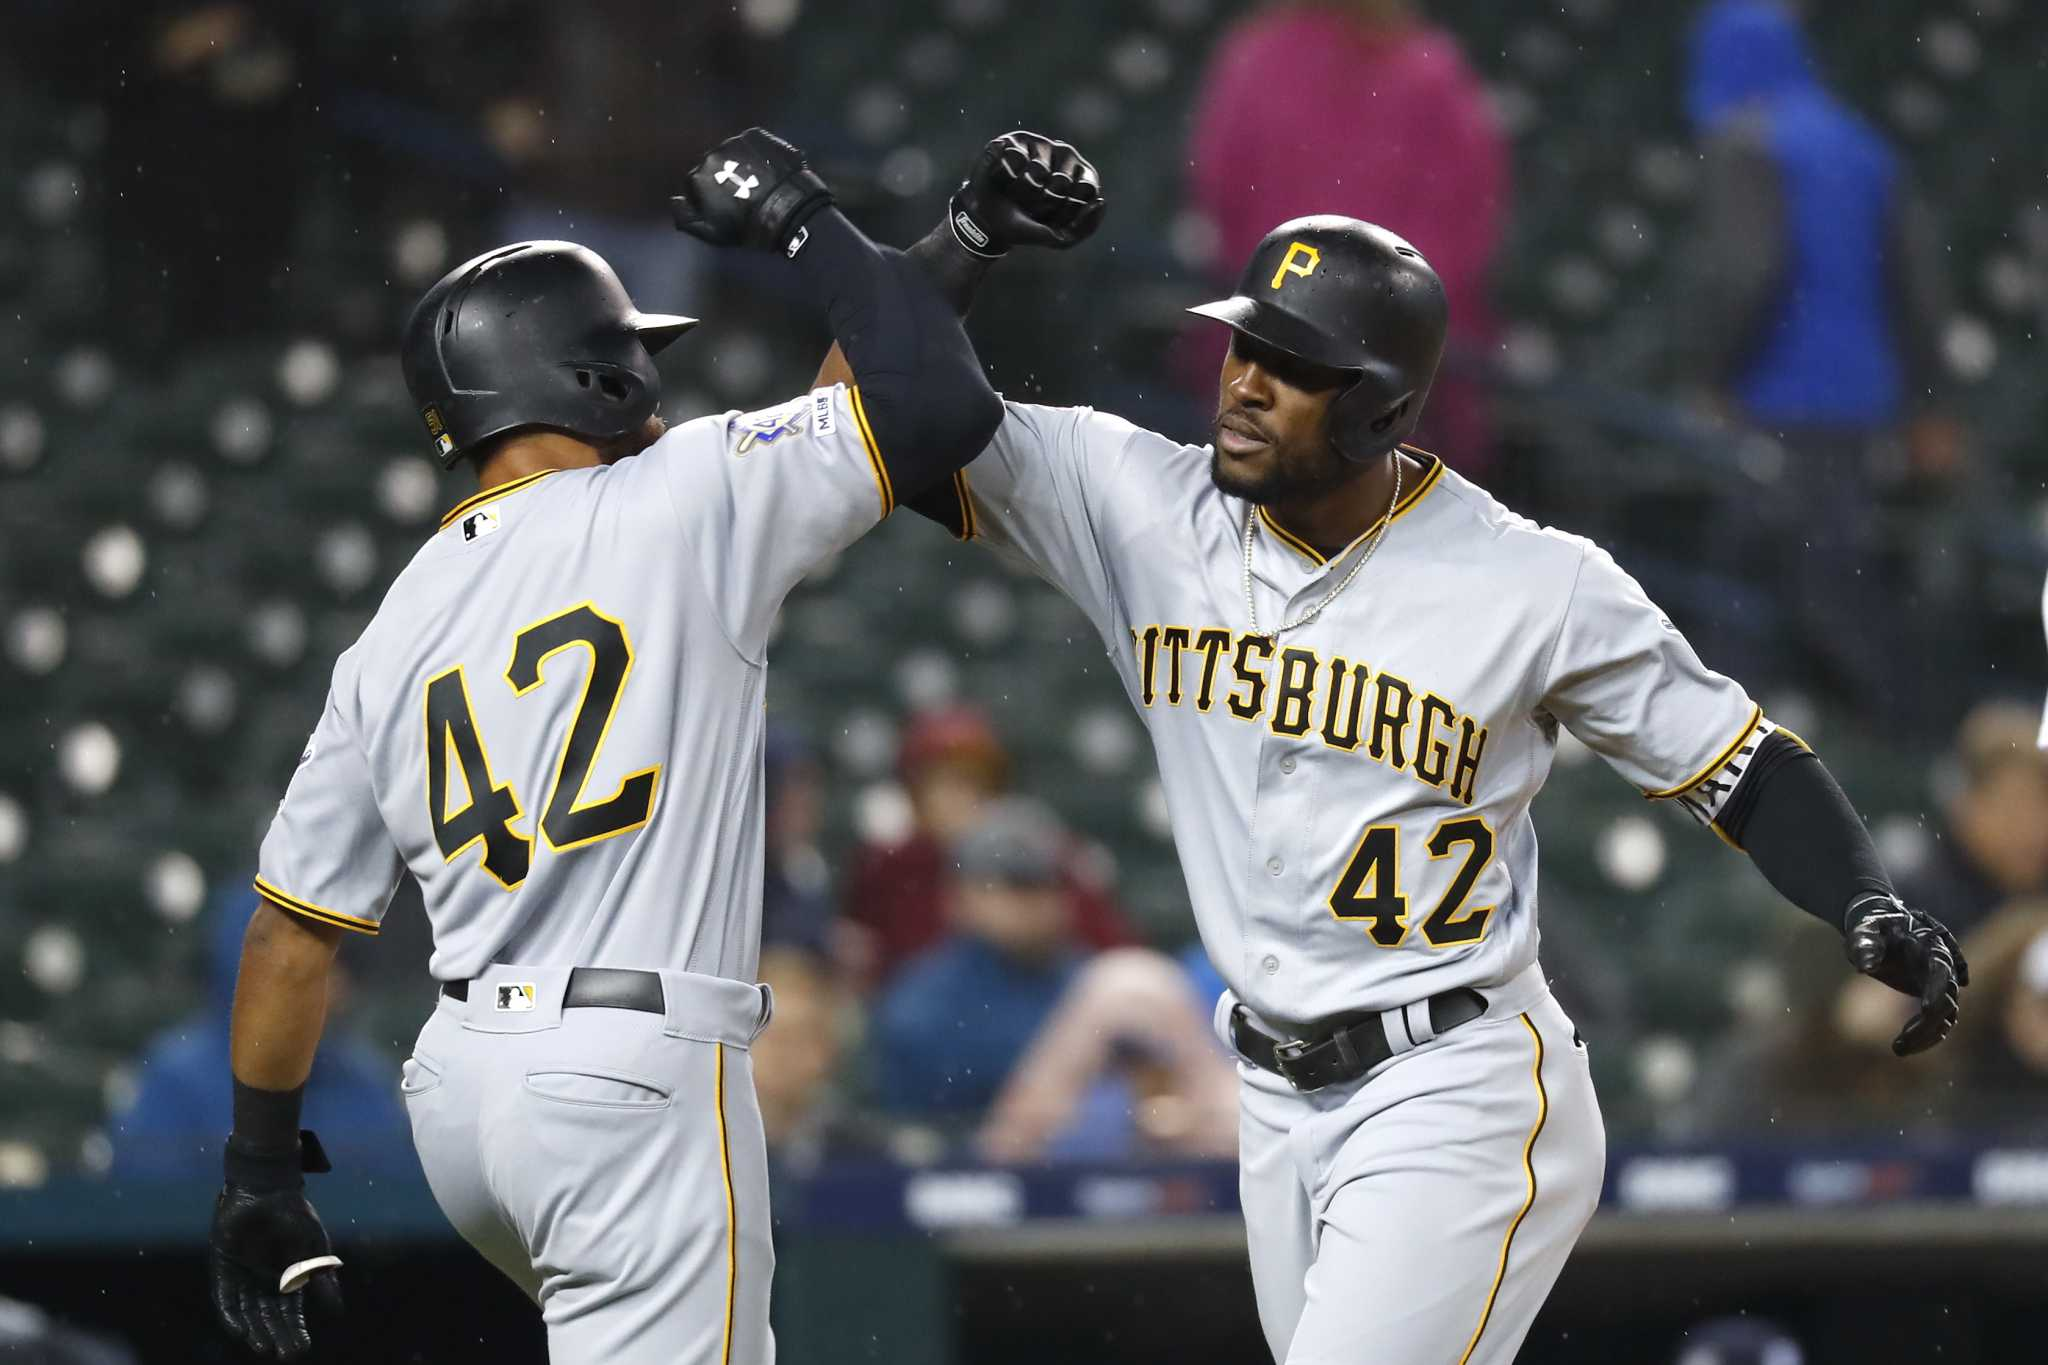 Marte homers in 10th to lead Pirates over Tigers 5-3